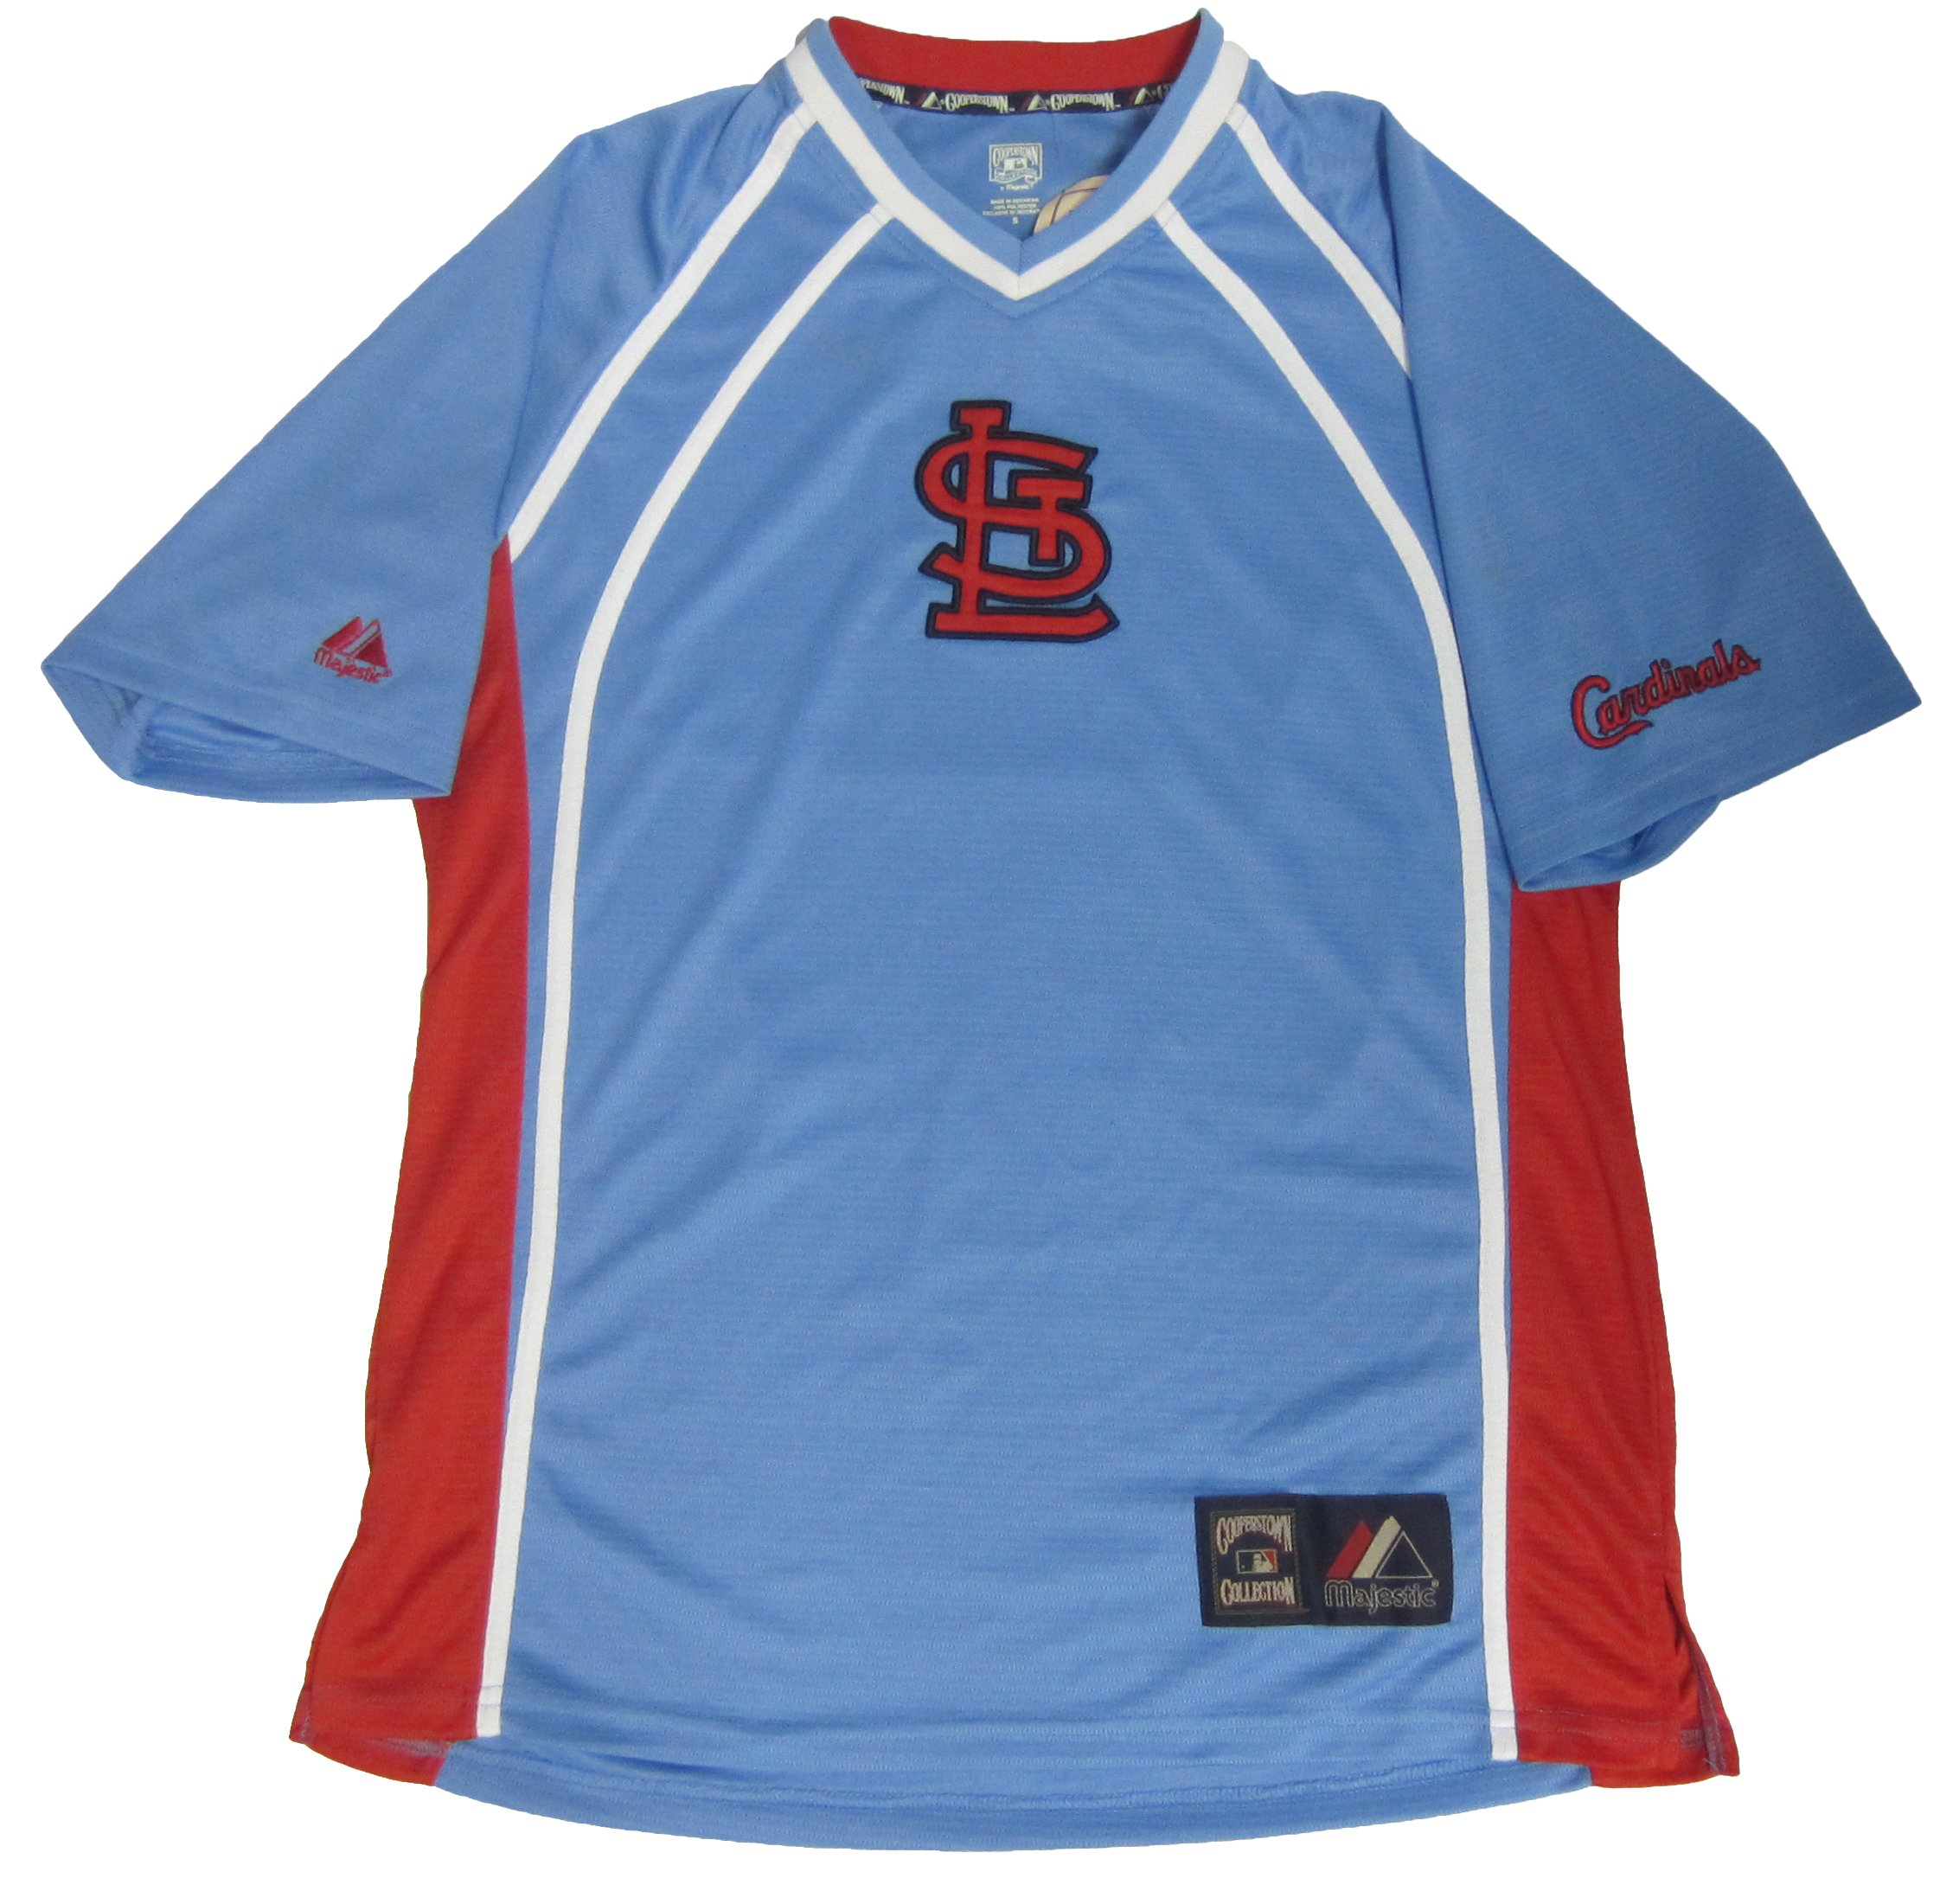 9e5f315d Details about NWT Mens Majestic Cooperstown Collection St. Louis Cardinals  Jersey Size S